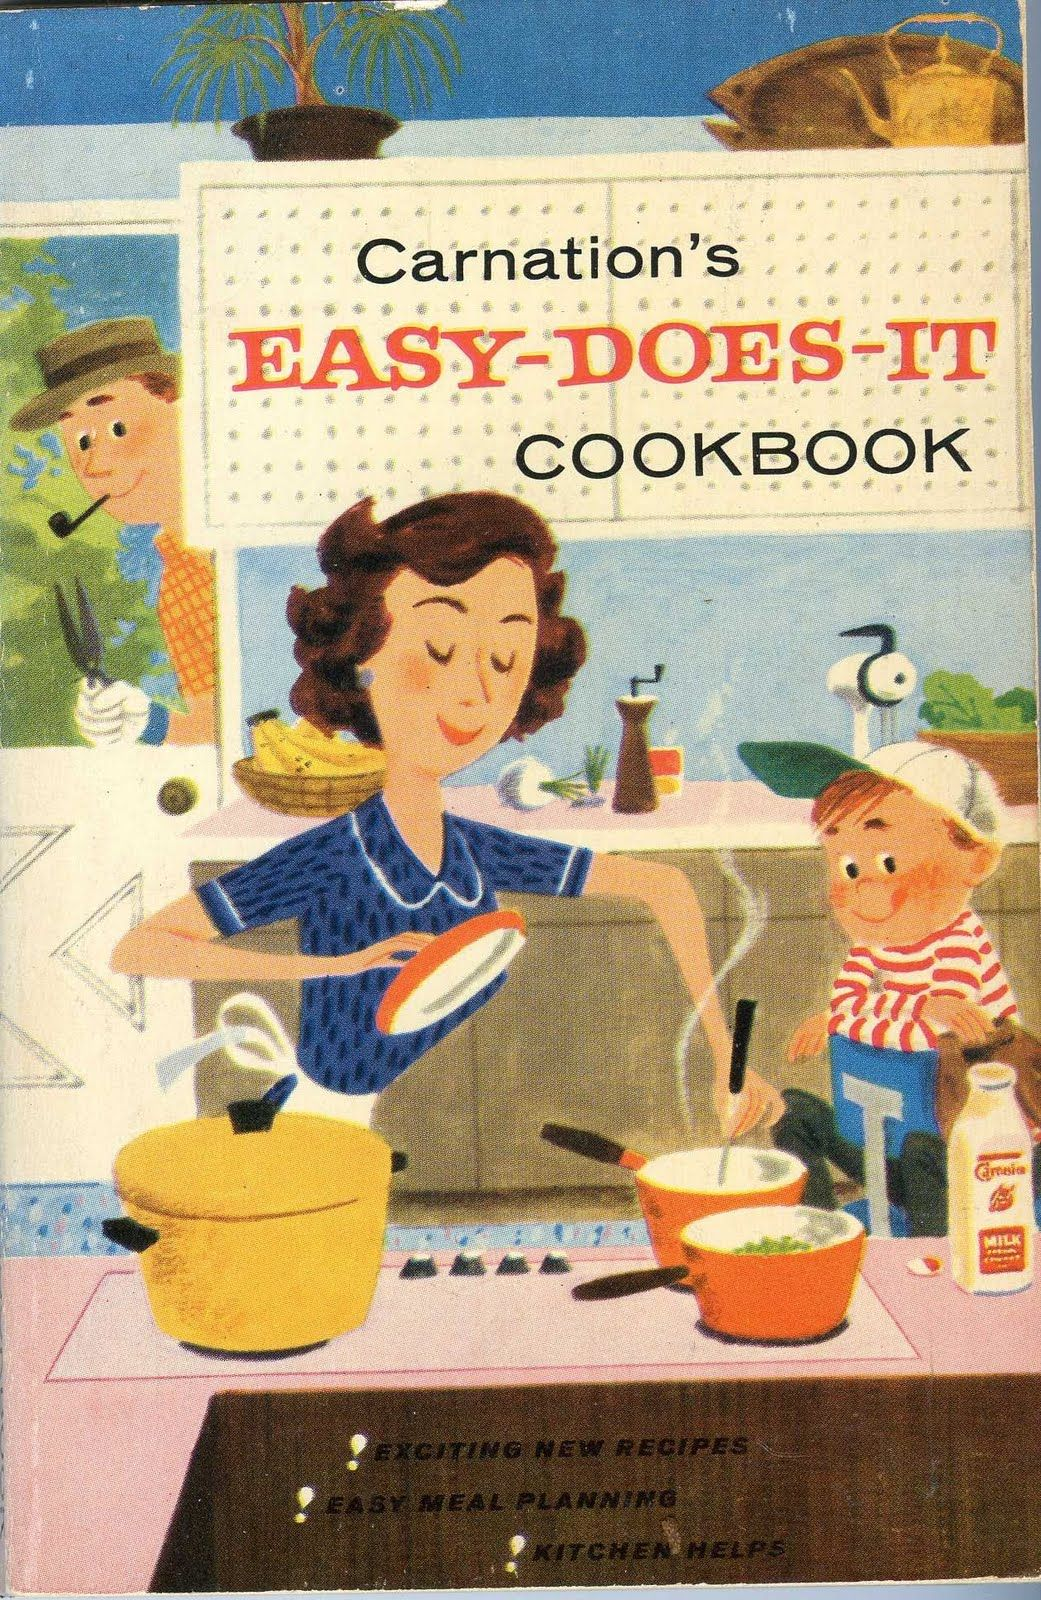 Cute Vintage Cooking Book Covers From The 40 S And 50 S I Like That Most Of The Used Illustrations Two Colo Vintage Cookbooks Vintage Recipes Vintage Cooking